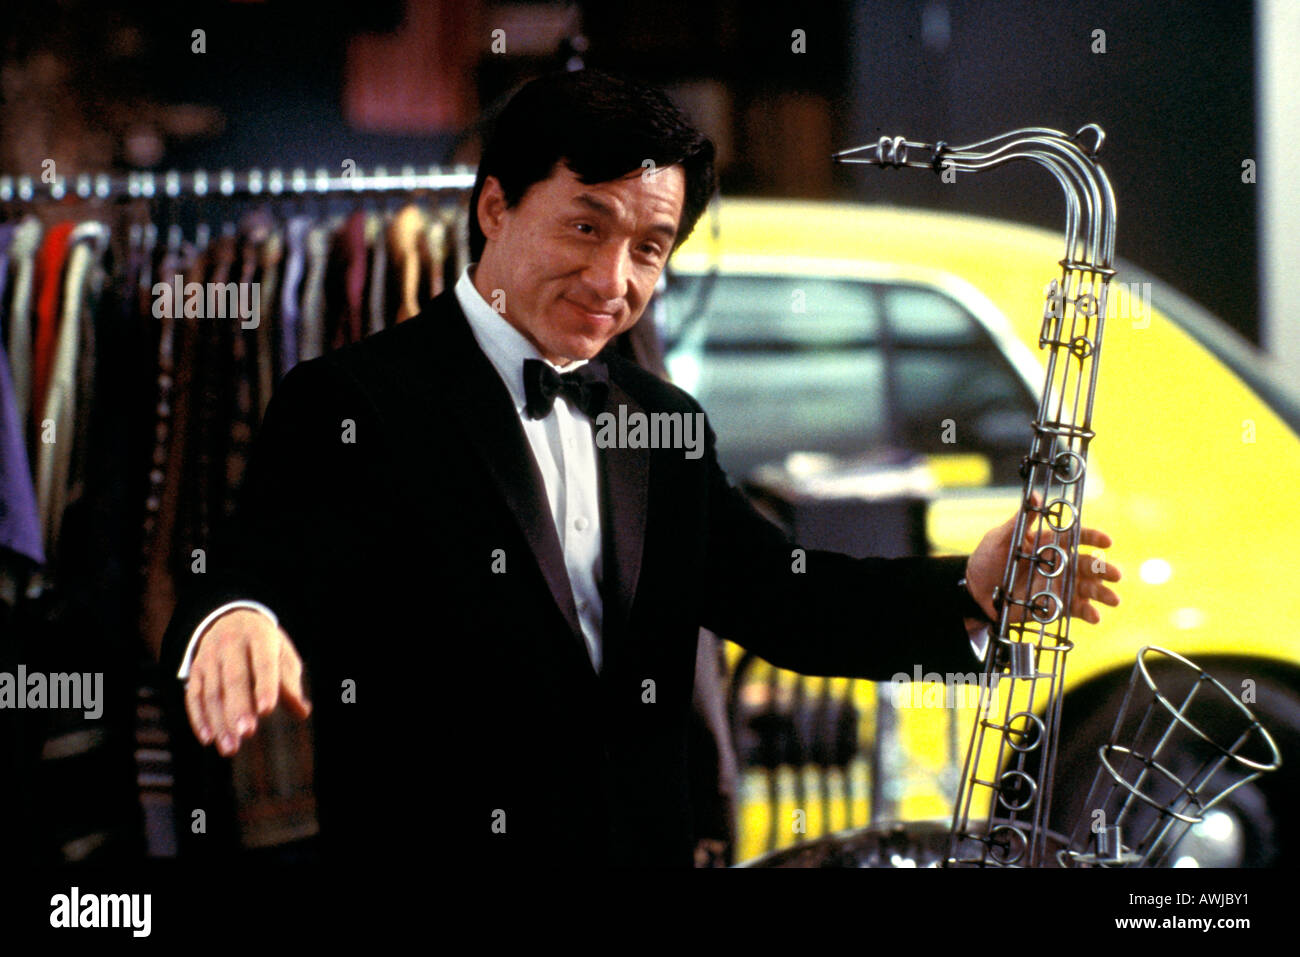 THE TUXEDO 2002 Dream Works film with Jackie Chan - Stock Image